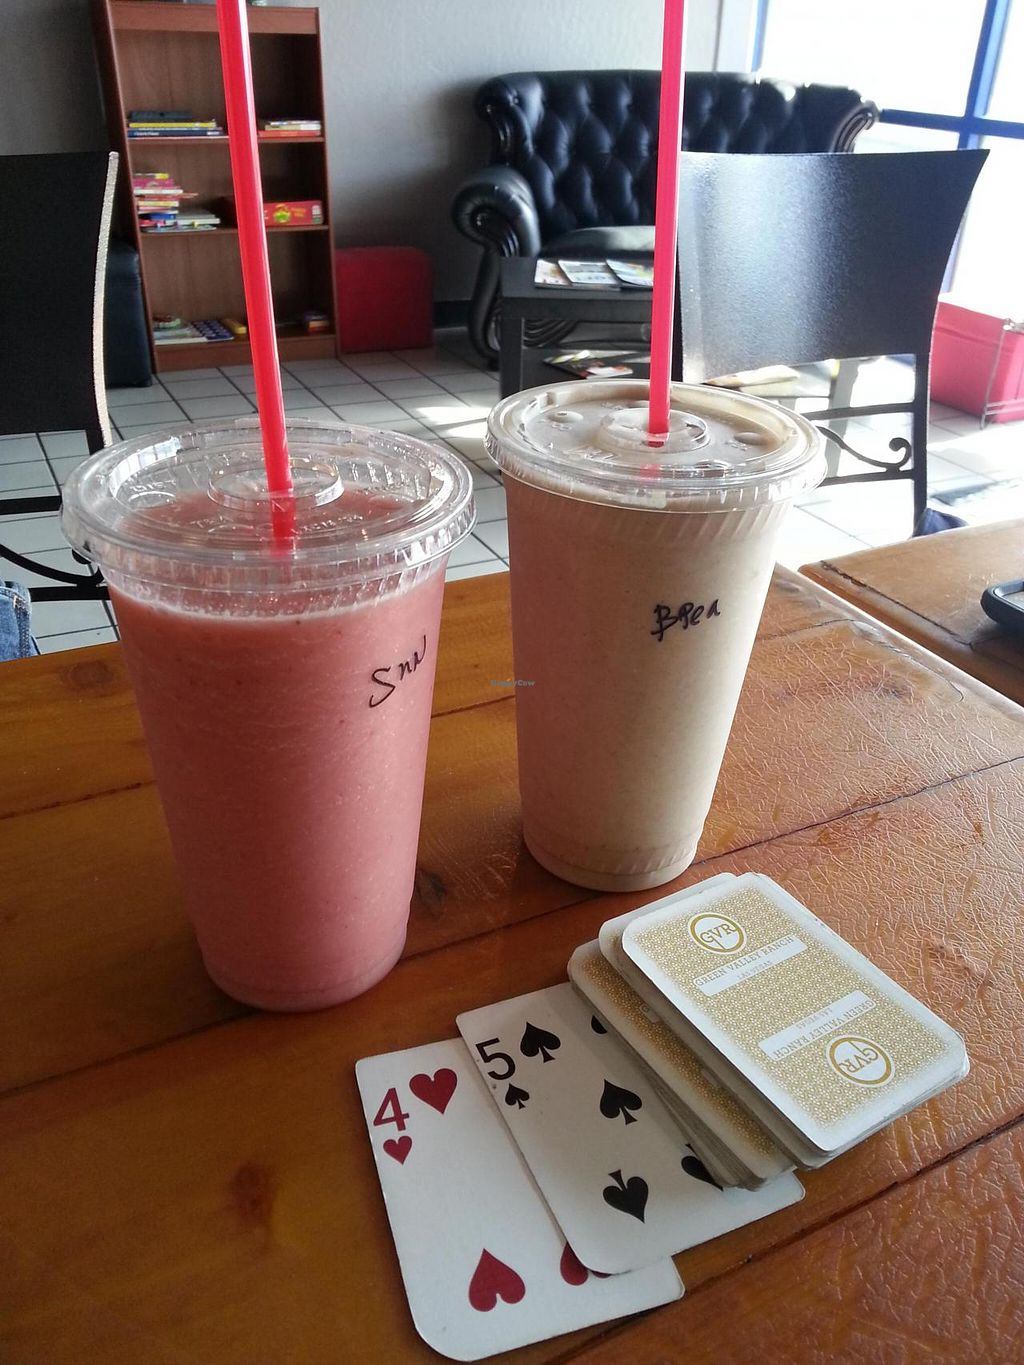 """Photo of Tiabi Coffee and Waffle Bar  by <a href=""""/members/profile/radtechg9"""">radtechg9</a> <br/>smoothies <br/> July 12, 2014  - <a href='/contact/abuse/image/45690/73851'>Report</a>"""